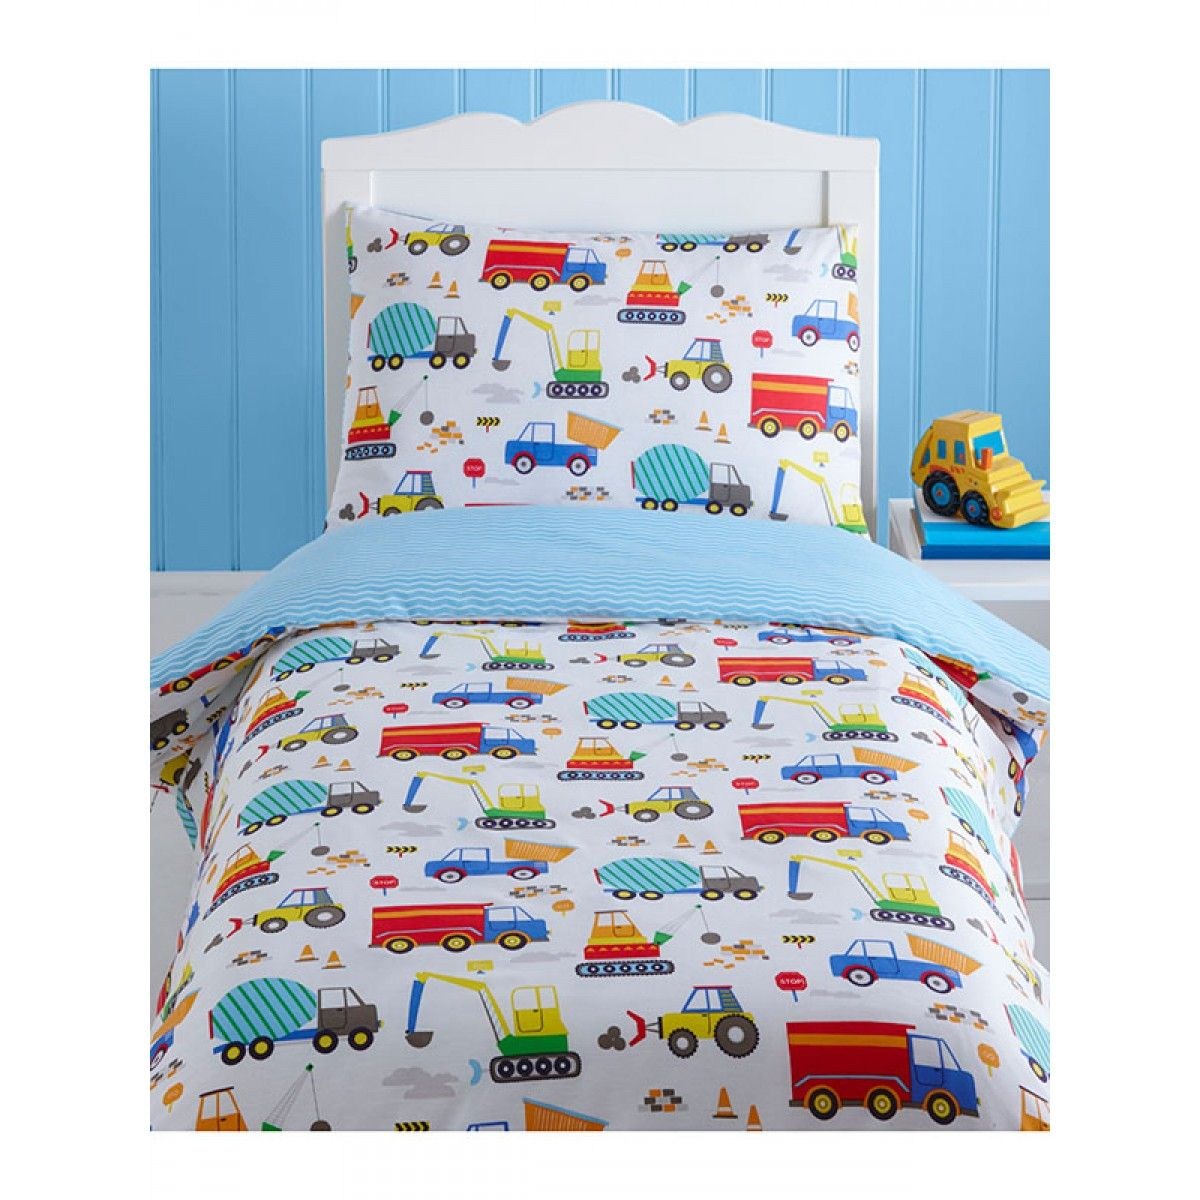 Bright Trucks Junior Toddler Duvet Cover & Pillowcase Set